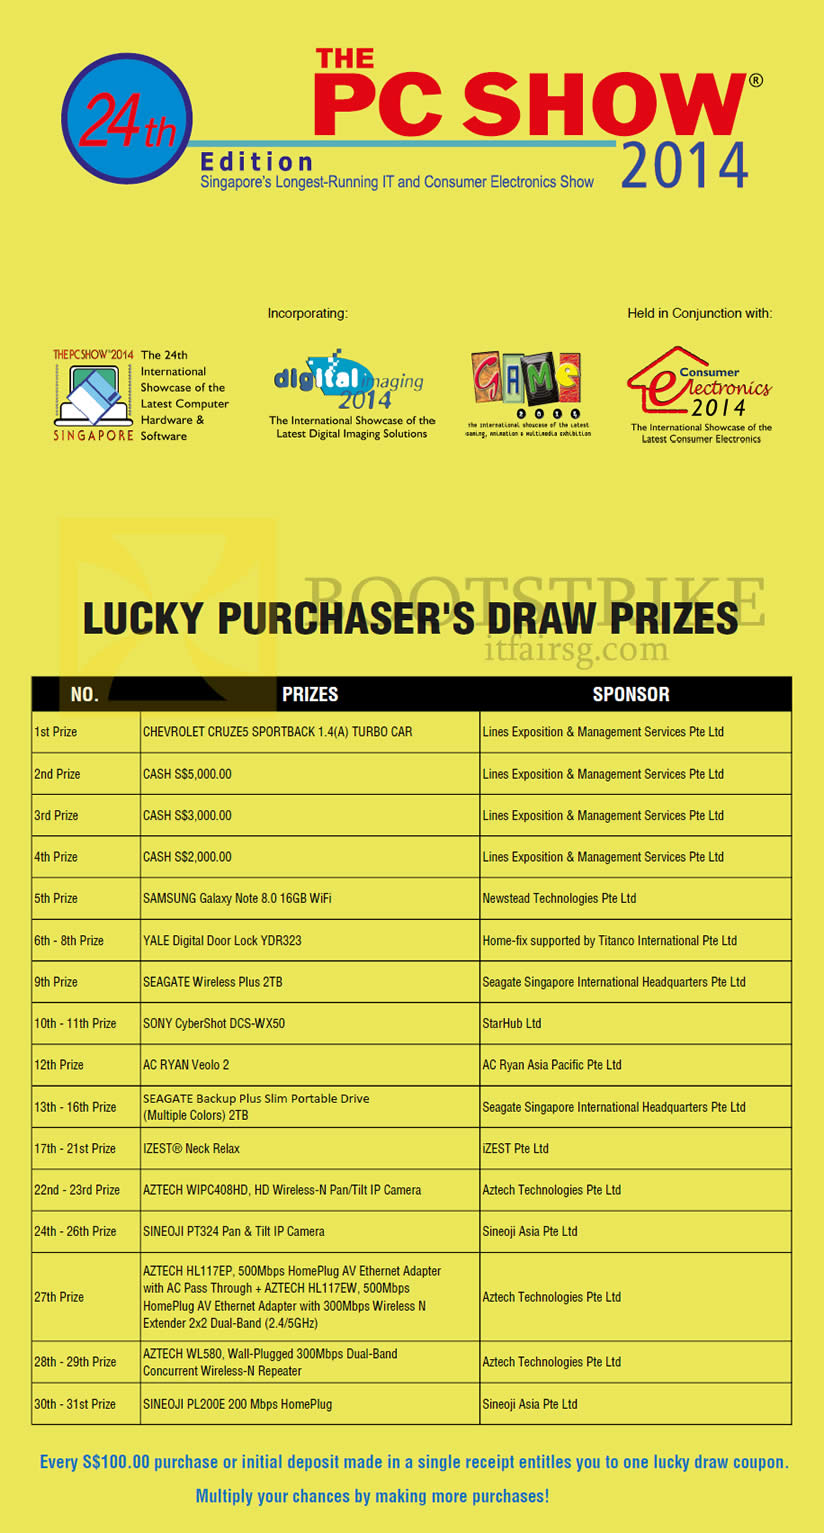 PC SHOW 2014 price list image brochure of PC Show Lucky Draw Prizes